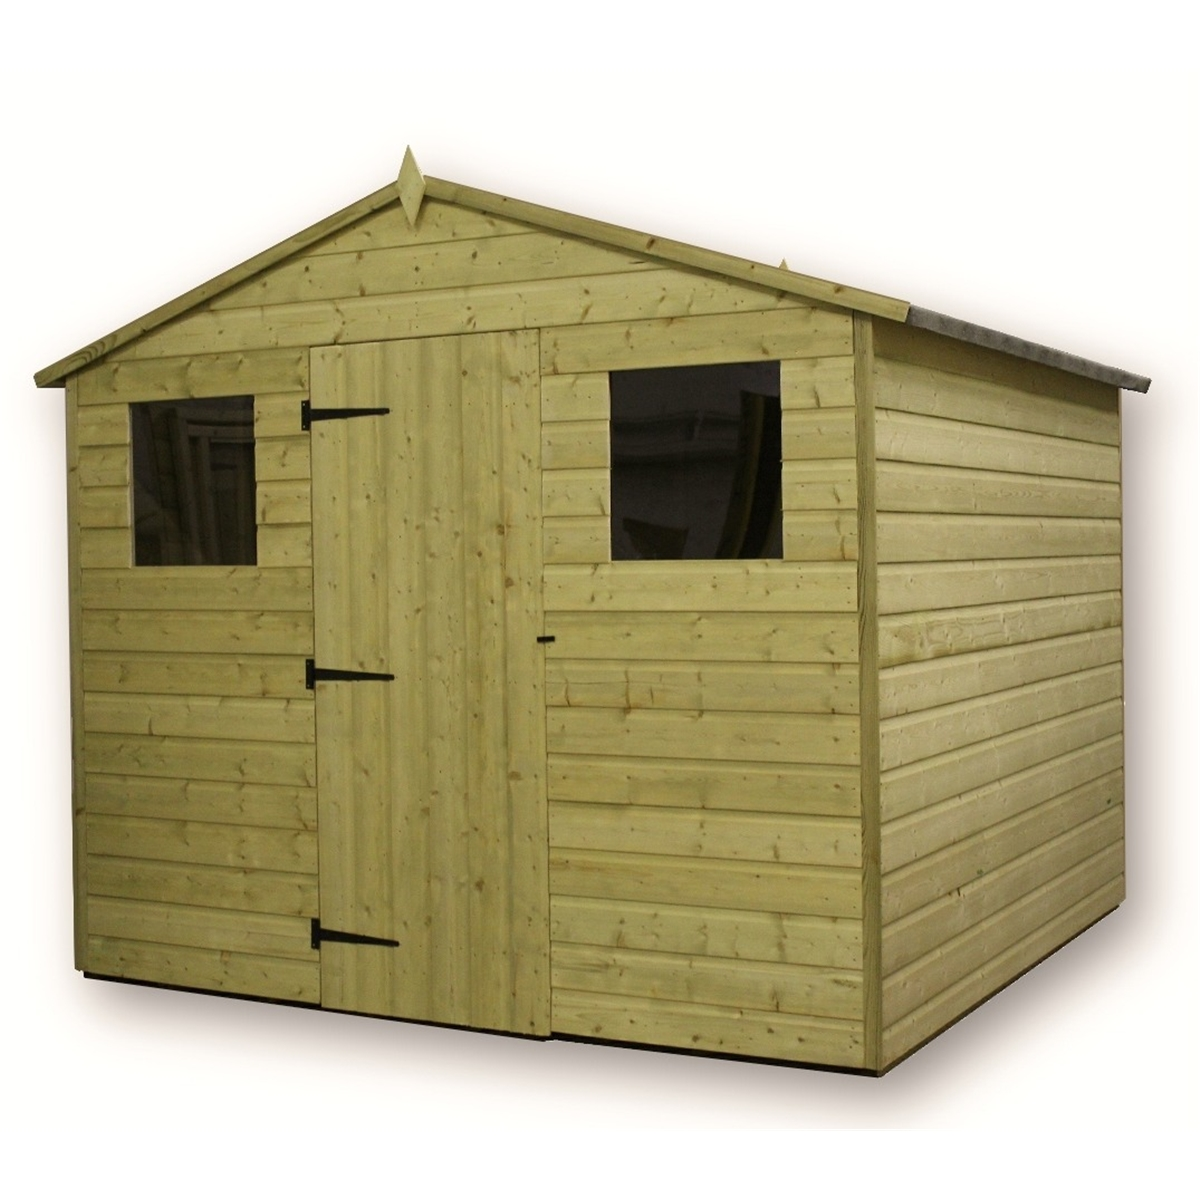 1200 #5B502A Pressure Treated Apex Shed image Shed Doors And Windows 41331200